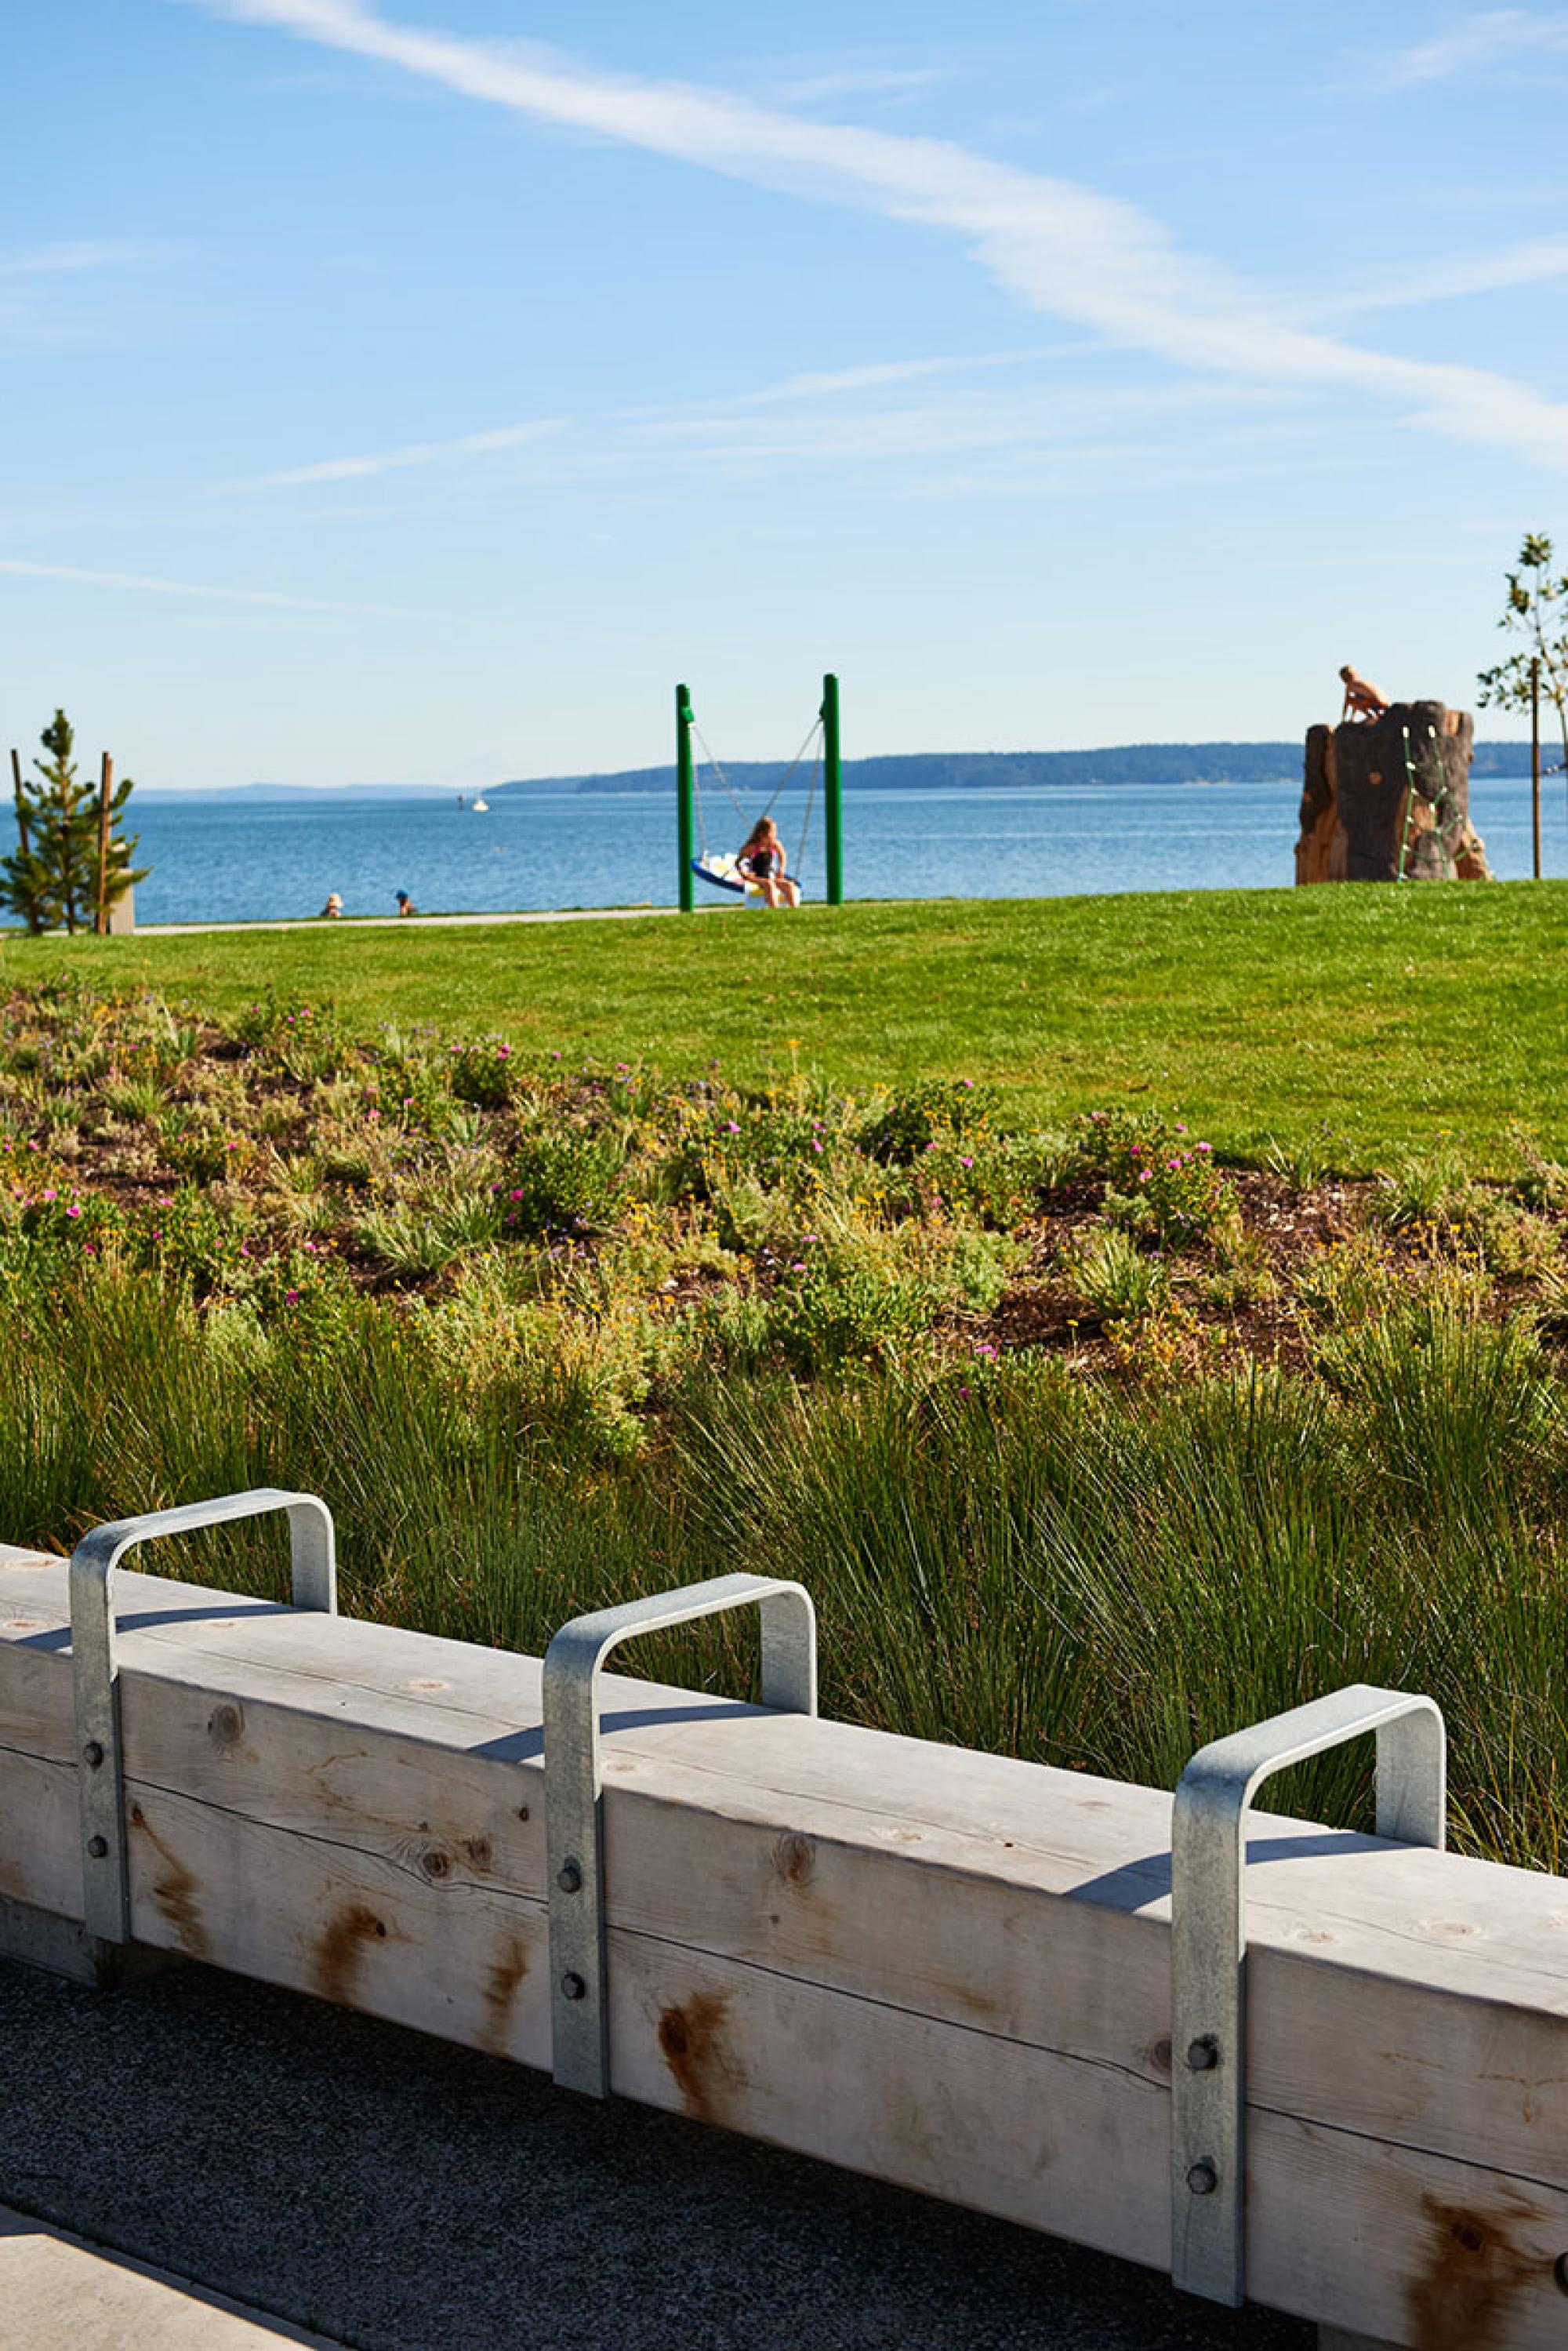 Oak Harbor Clean Water Facility + Windjammer Waterfront Park, by GreenWorks